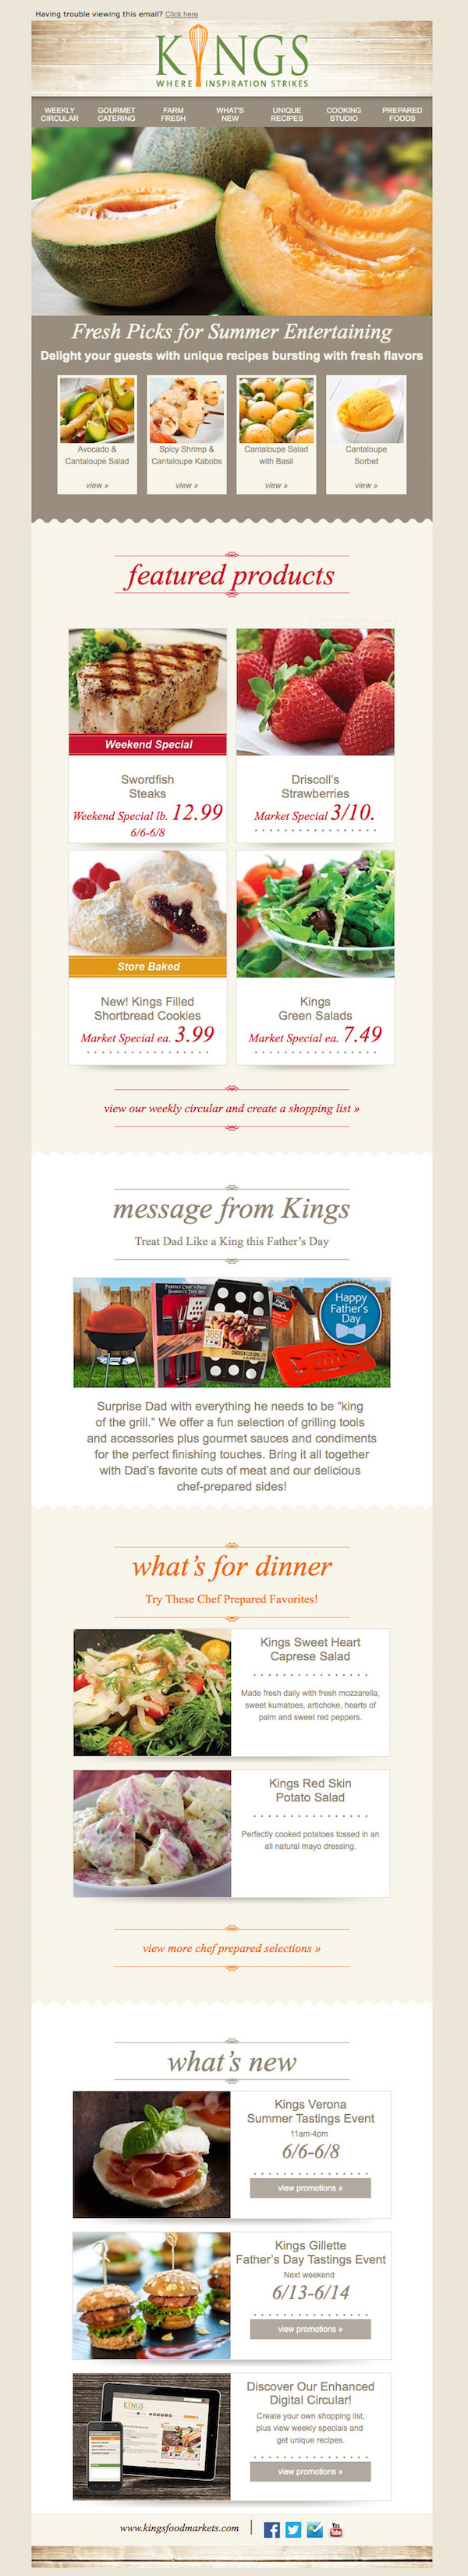 creative-email-newsletter-designs